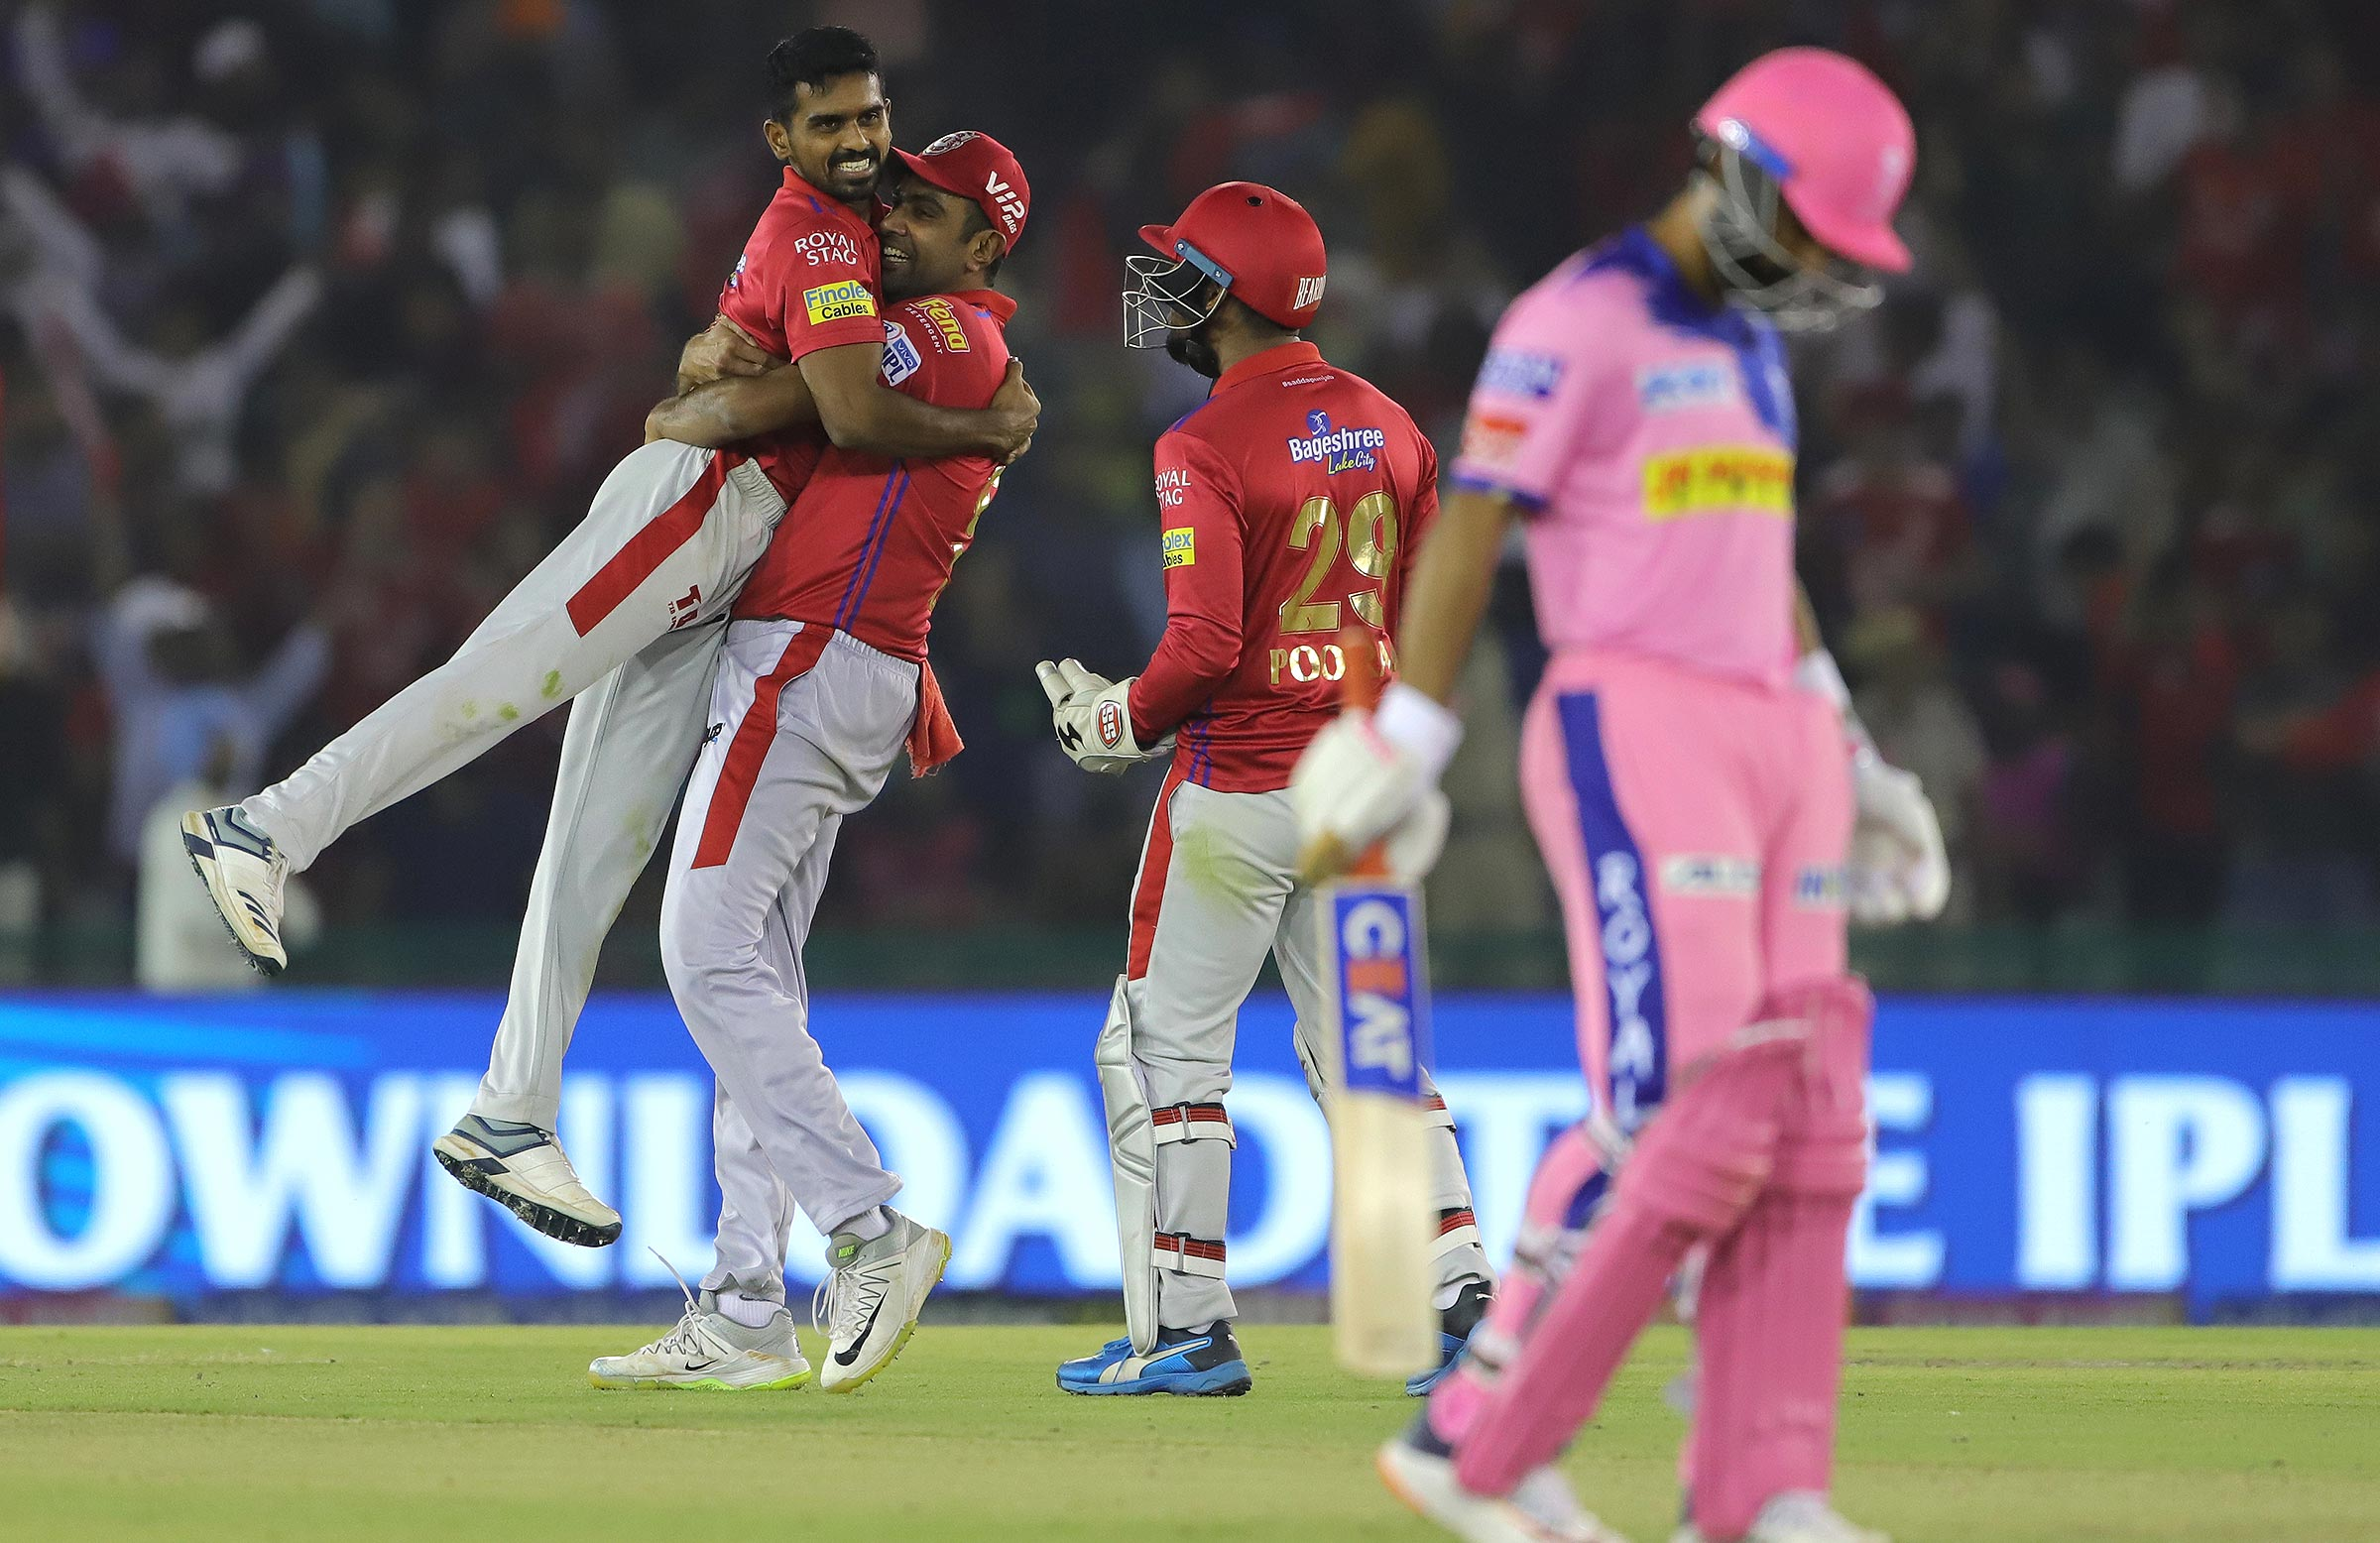 The Royals have now won just two of eight matches // BCCI